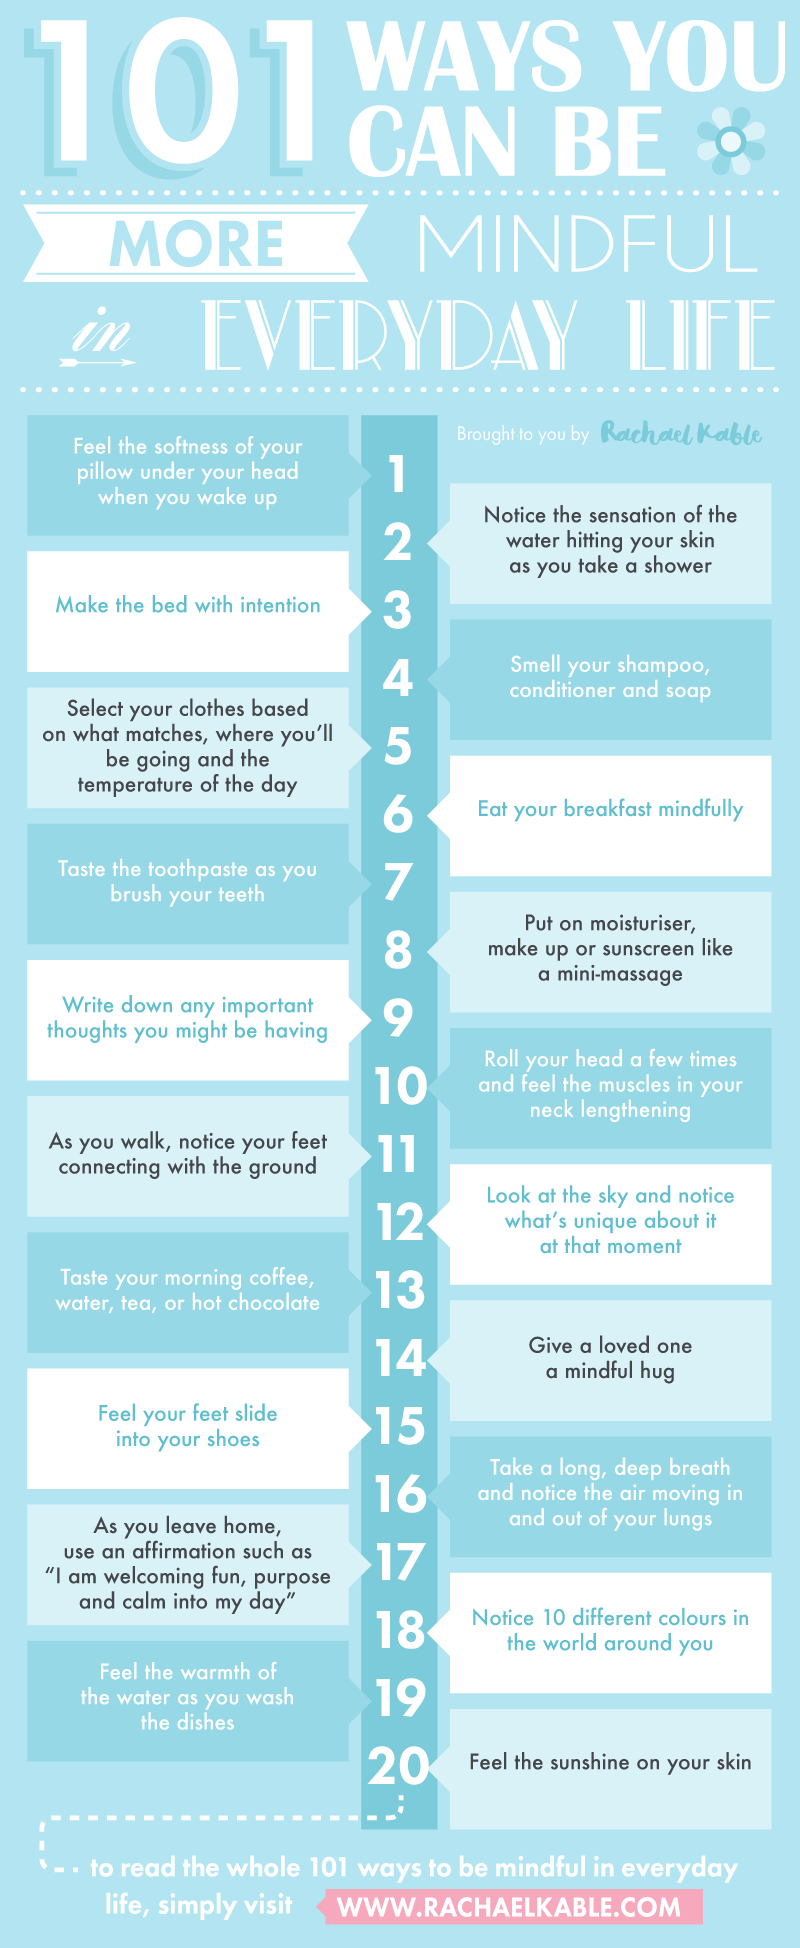 101 Ways You Can Be More Mindful In Everyday Life Mindfulness Mindfulness Meditation Mindfulness Exercises